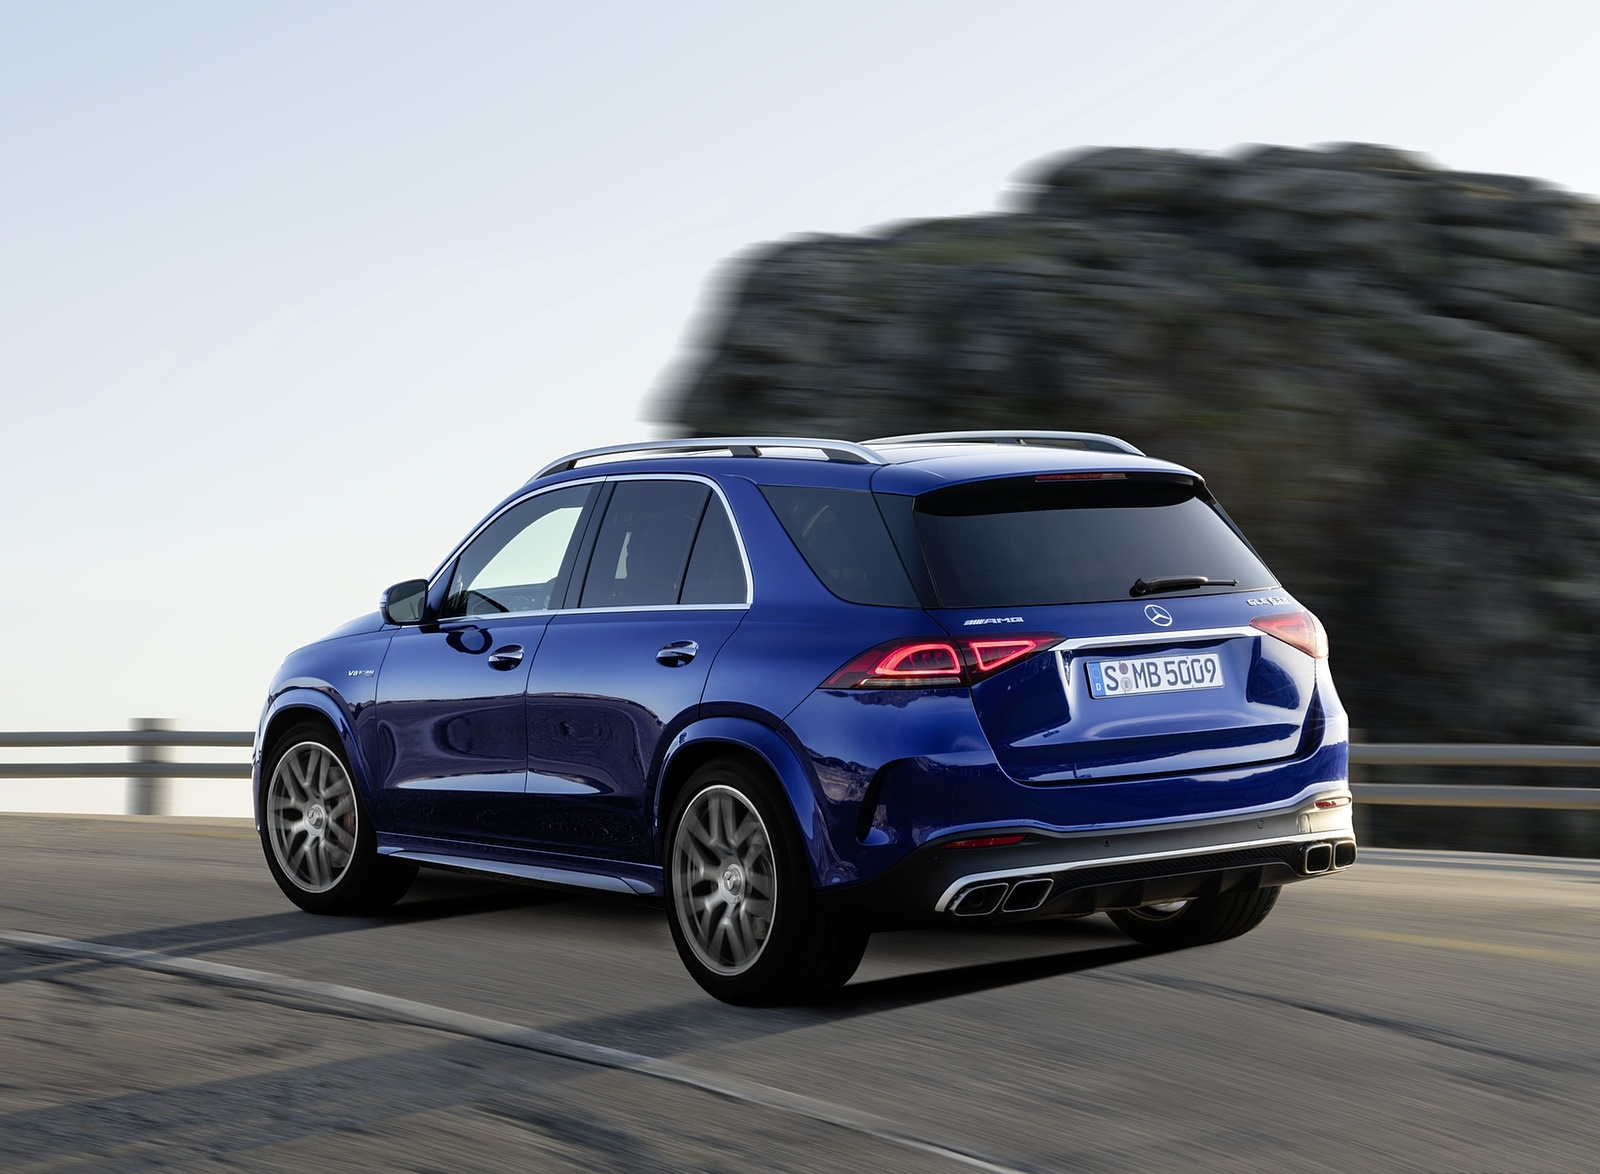 2021 Mercedes-AMG GLE 63 S 4MATIC Rear Three-Quarter Wallpapers (9)